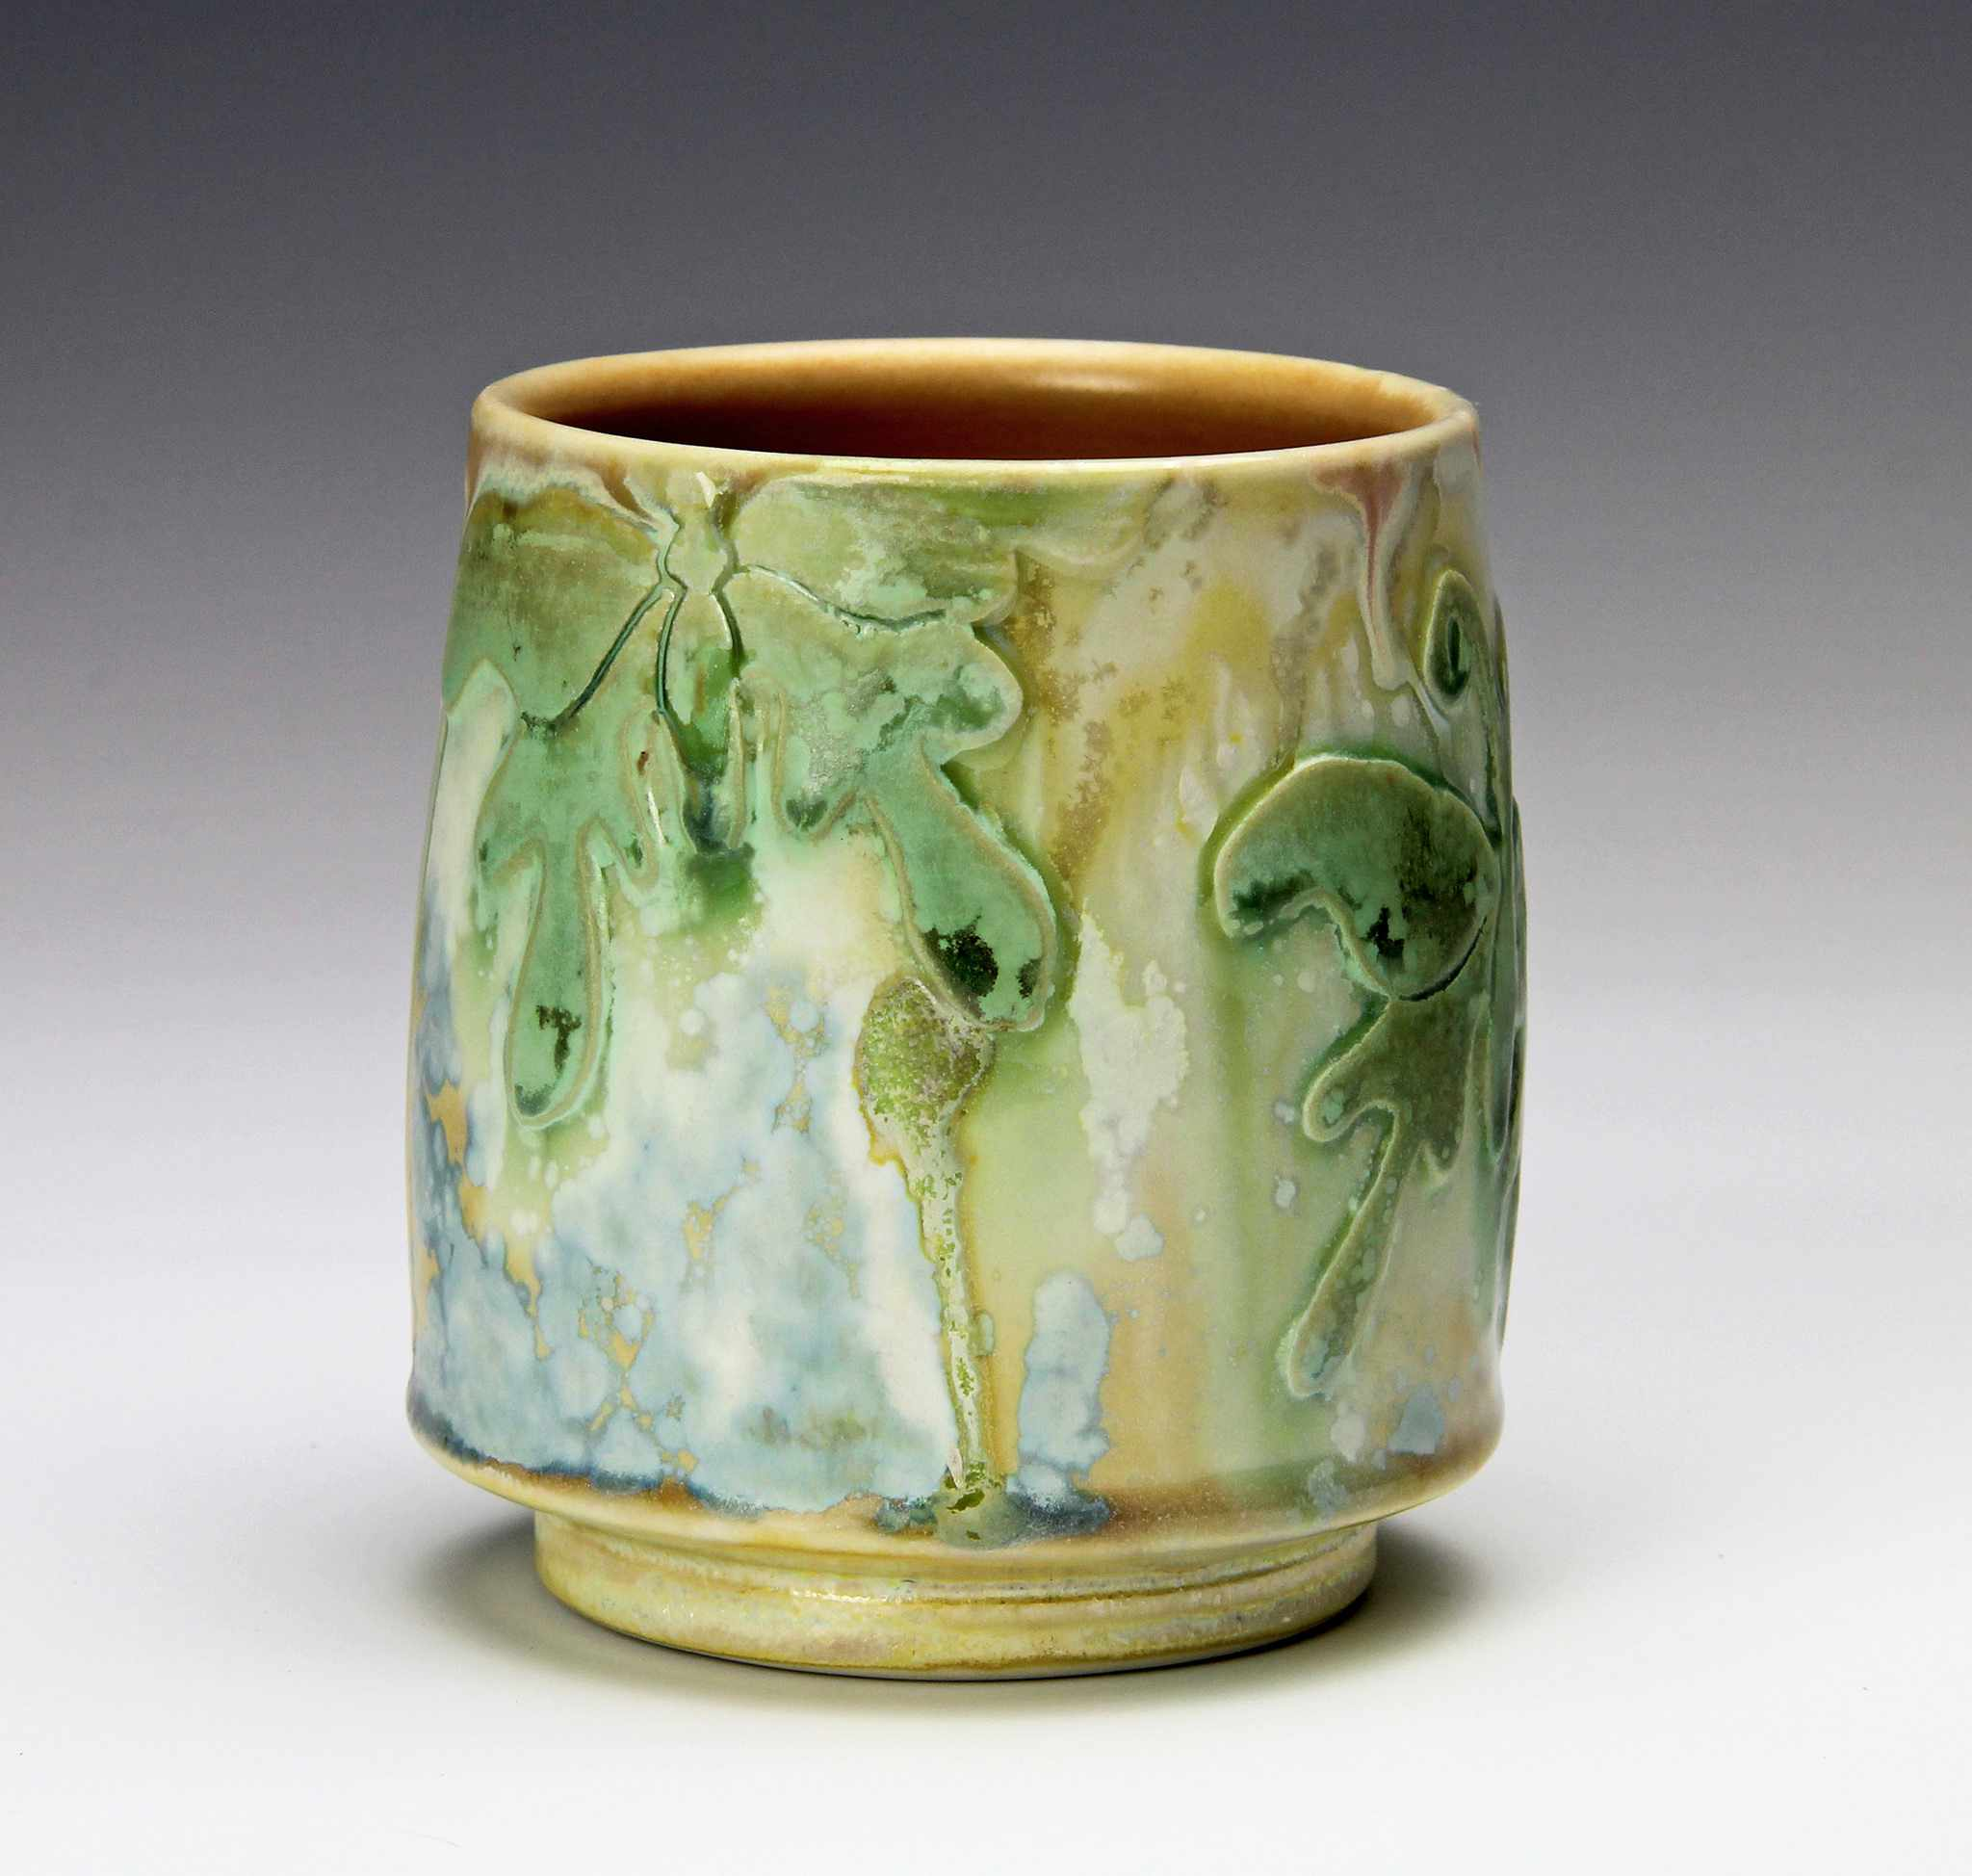 Crystalline glaze with green and blue container